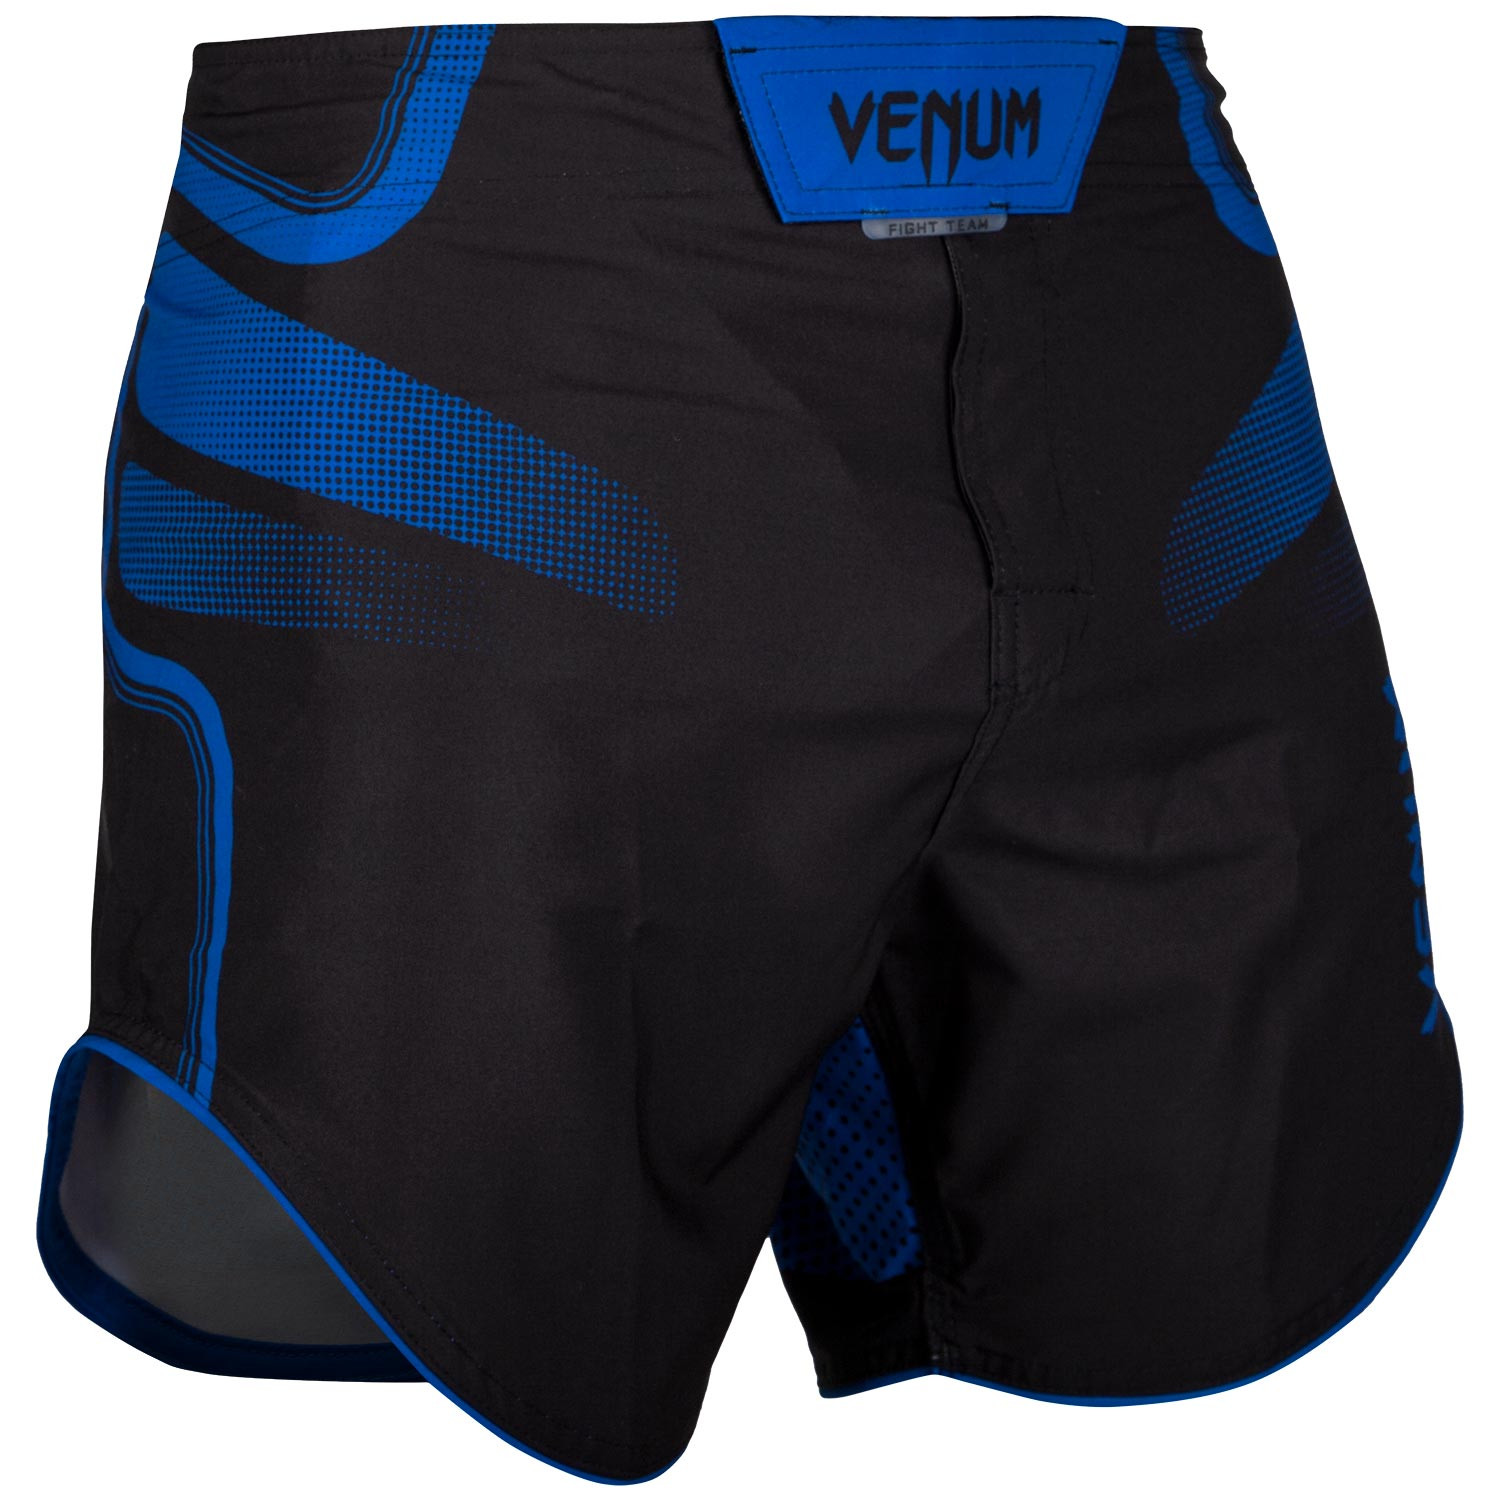 Шорты ММА Venum Tempest 2.0 Black/Blue